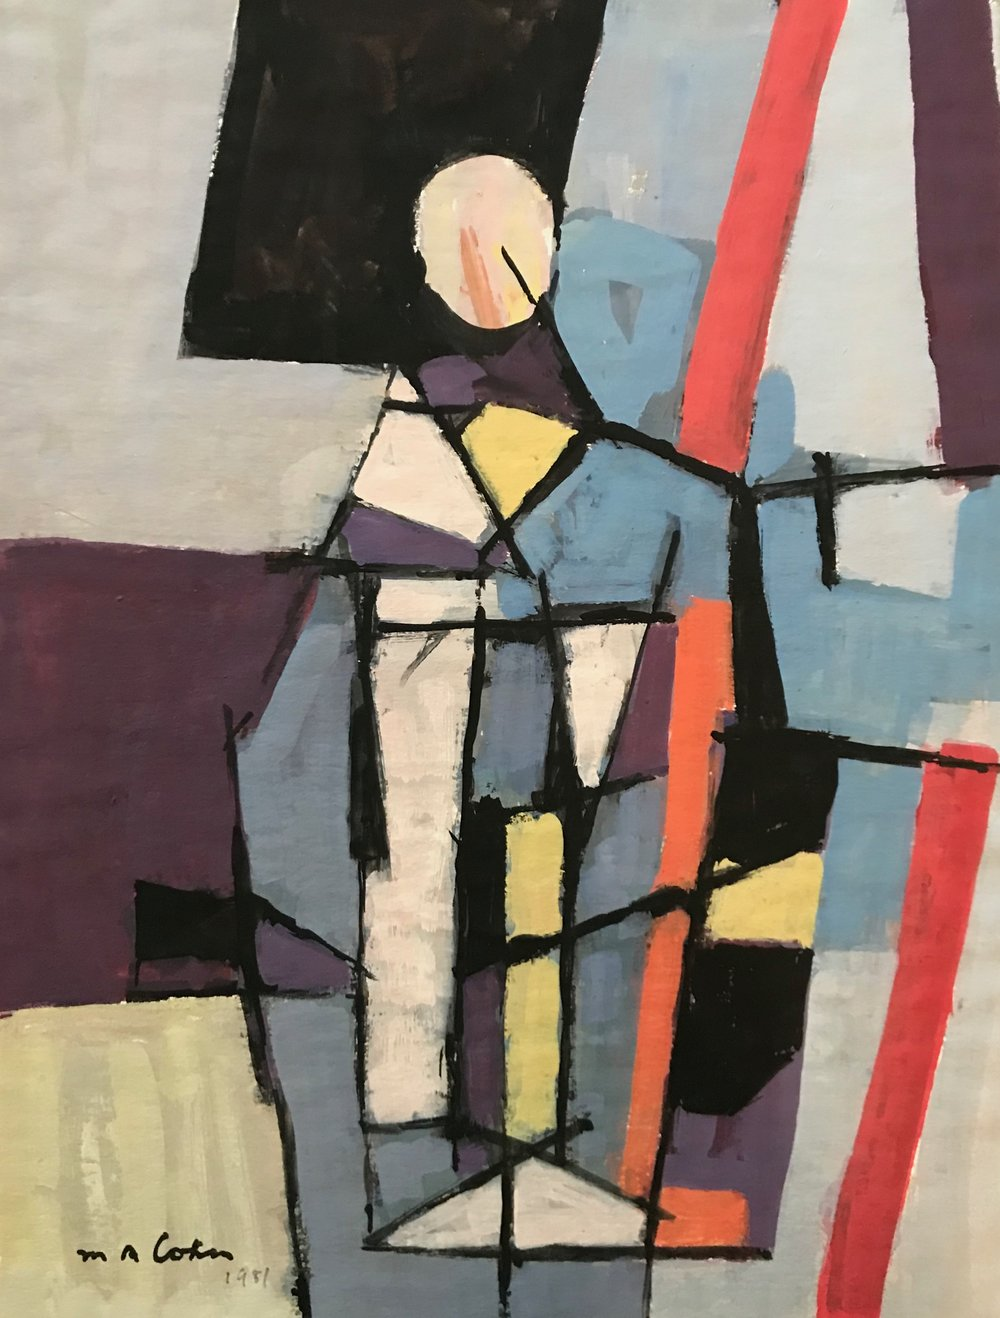 "Abstract Figure 1987-G1 by Max Arthur Cohn 1987 Gouache on Paper 10.25"" x 13.25"""